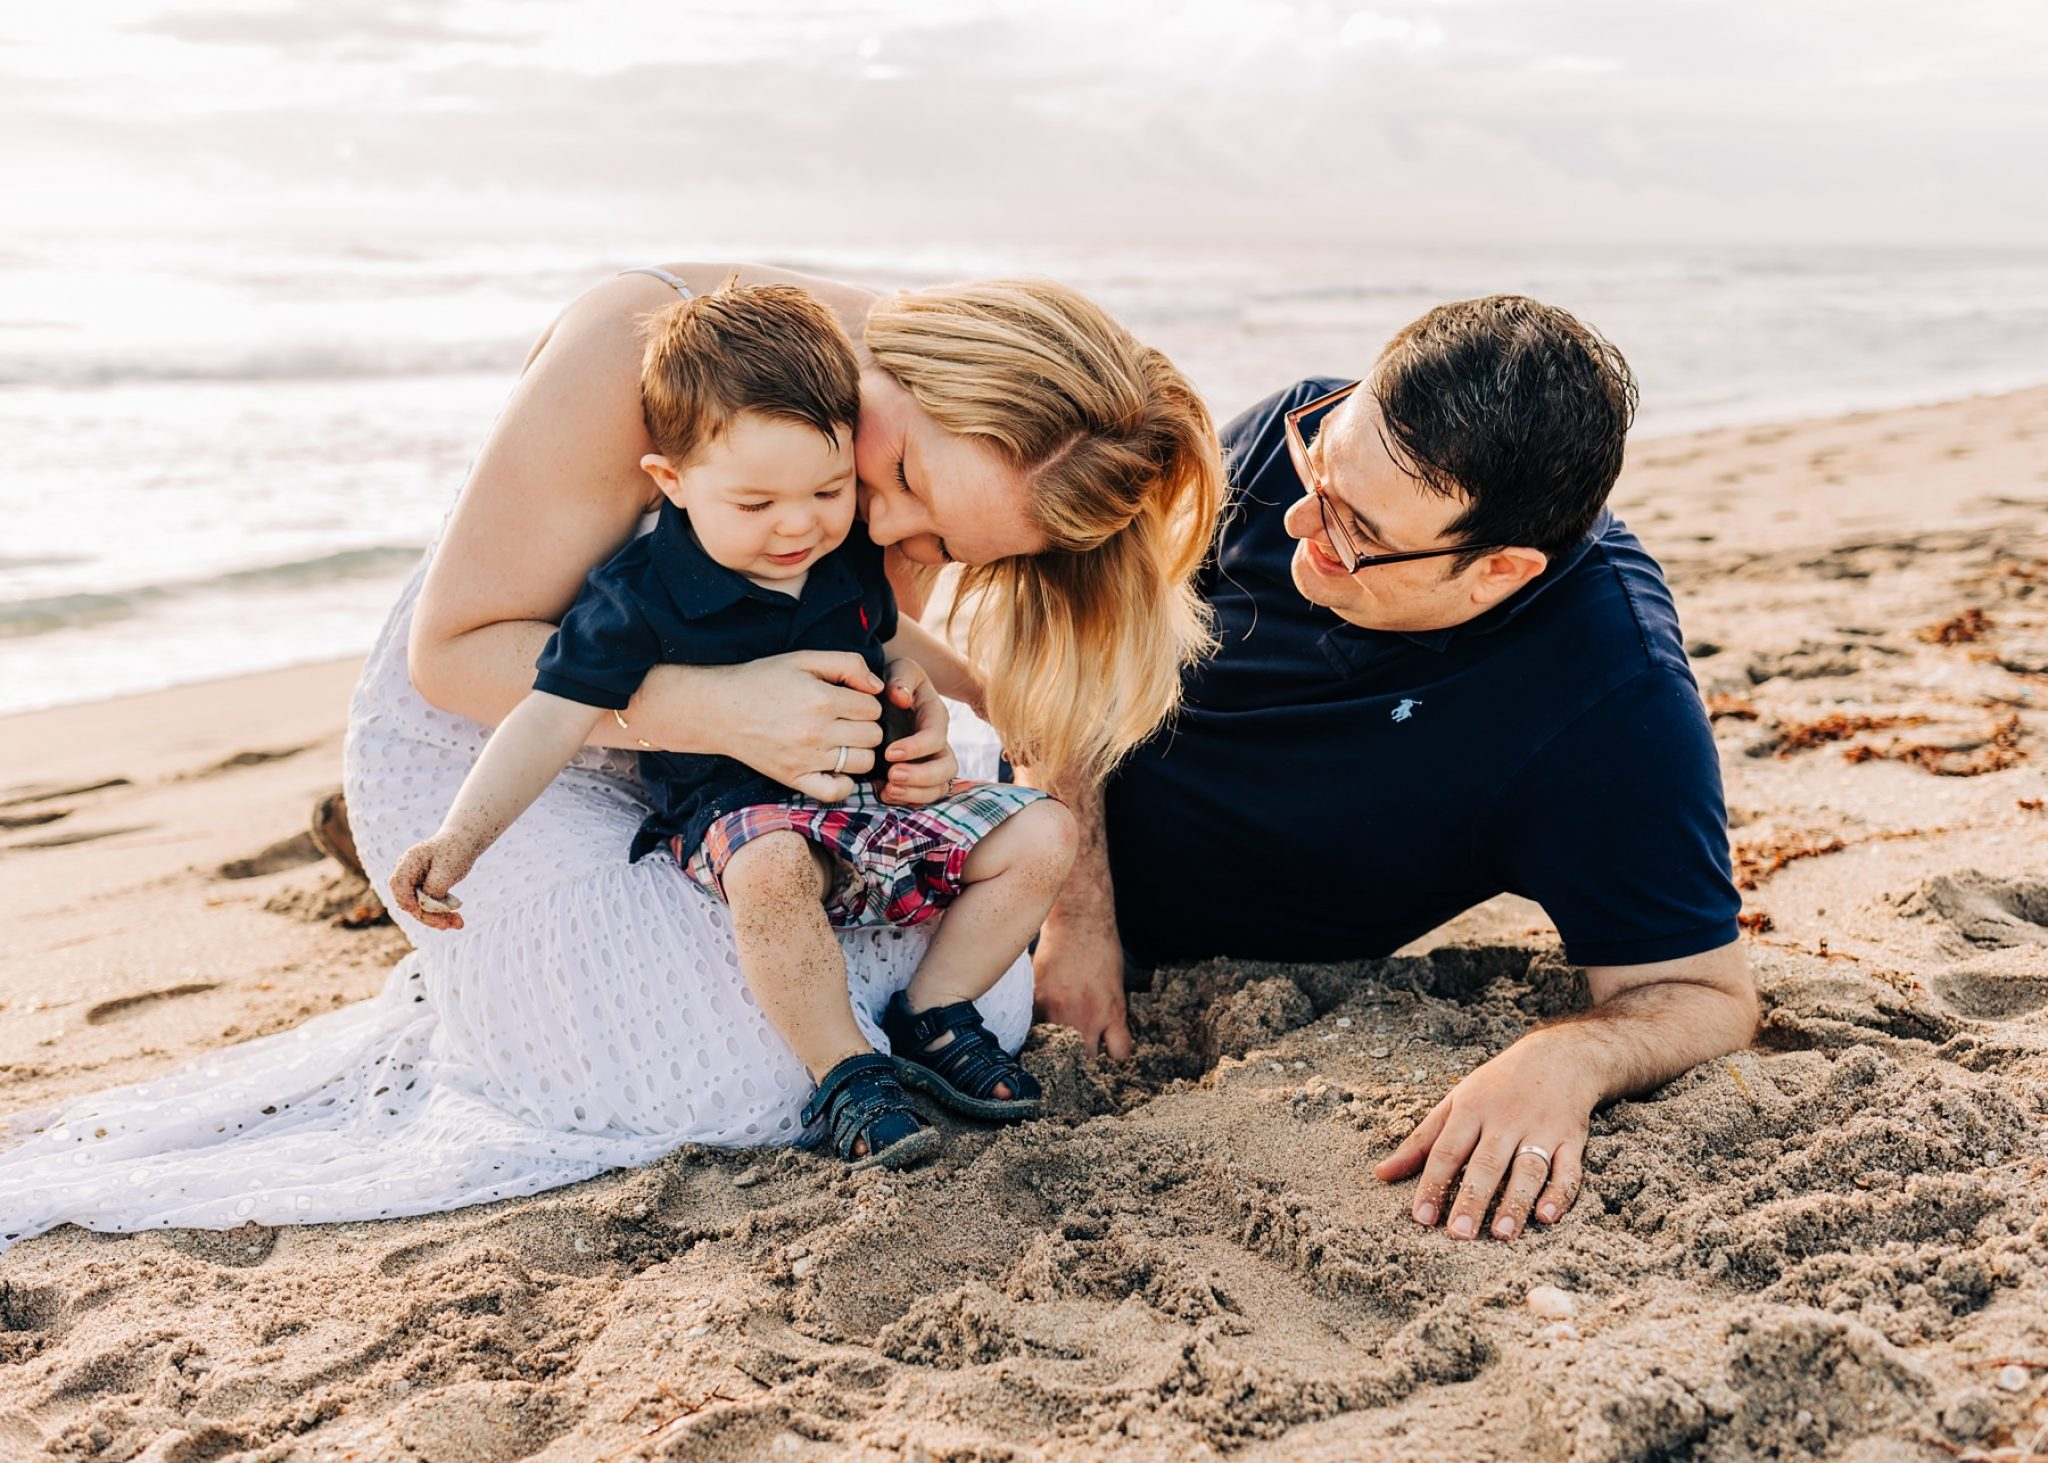 Singer-Island-Family-Photography-Erica-Brooke-Photography-17